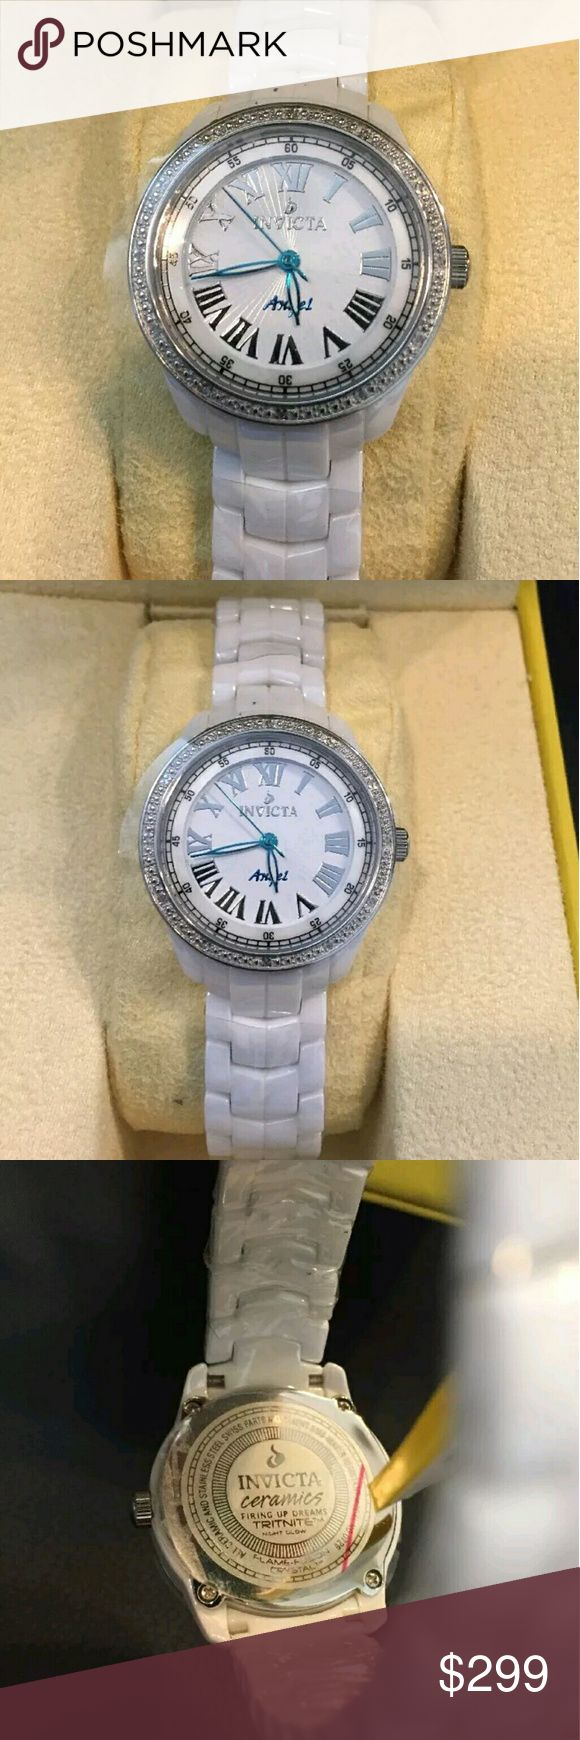 Big sale,$1,400 Invicta Ceramic Diamond watch Big  FIRM PRICE   $1,495 Invicta Ceramics Diamond white watch  FIRM PRICE FIRM PRICE  $395.00 . AUTHENTIC WATCH  . AUTHENTIC BOX  . AUTHENTIC MANUAL    SHIPPING  PLEASE ALLOW 3 BUSINESS DAYS FOR ME TO SHIPPED IT OFF.I HAVE TO GET IT FROM MY STORE.  THANK YOU FOR YOUR UNDERSTANDING. Invicta Accessories Watches